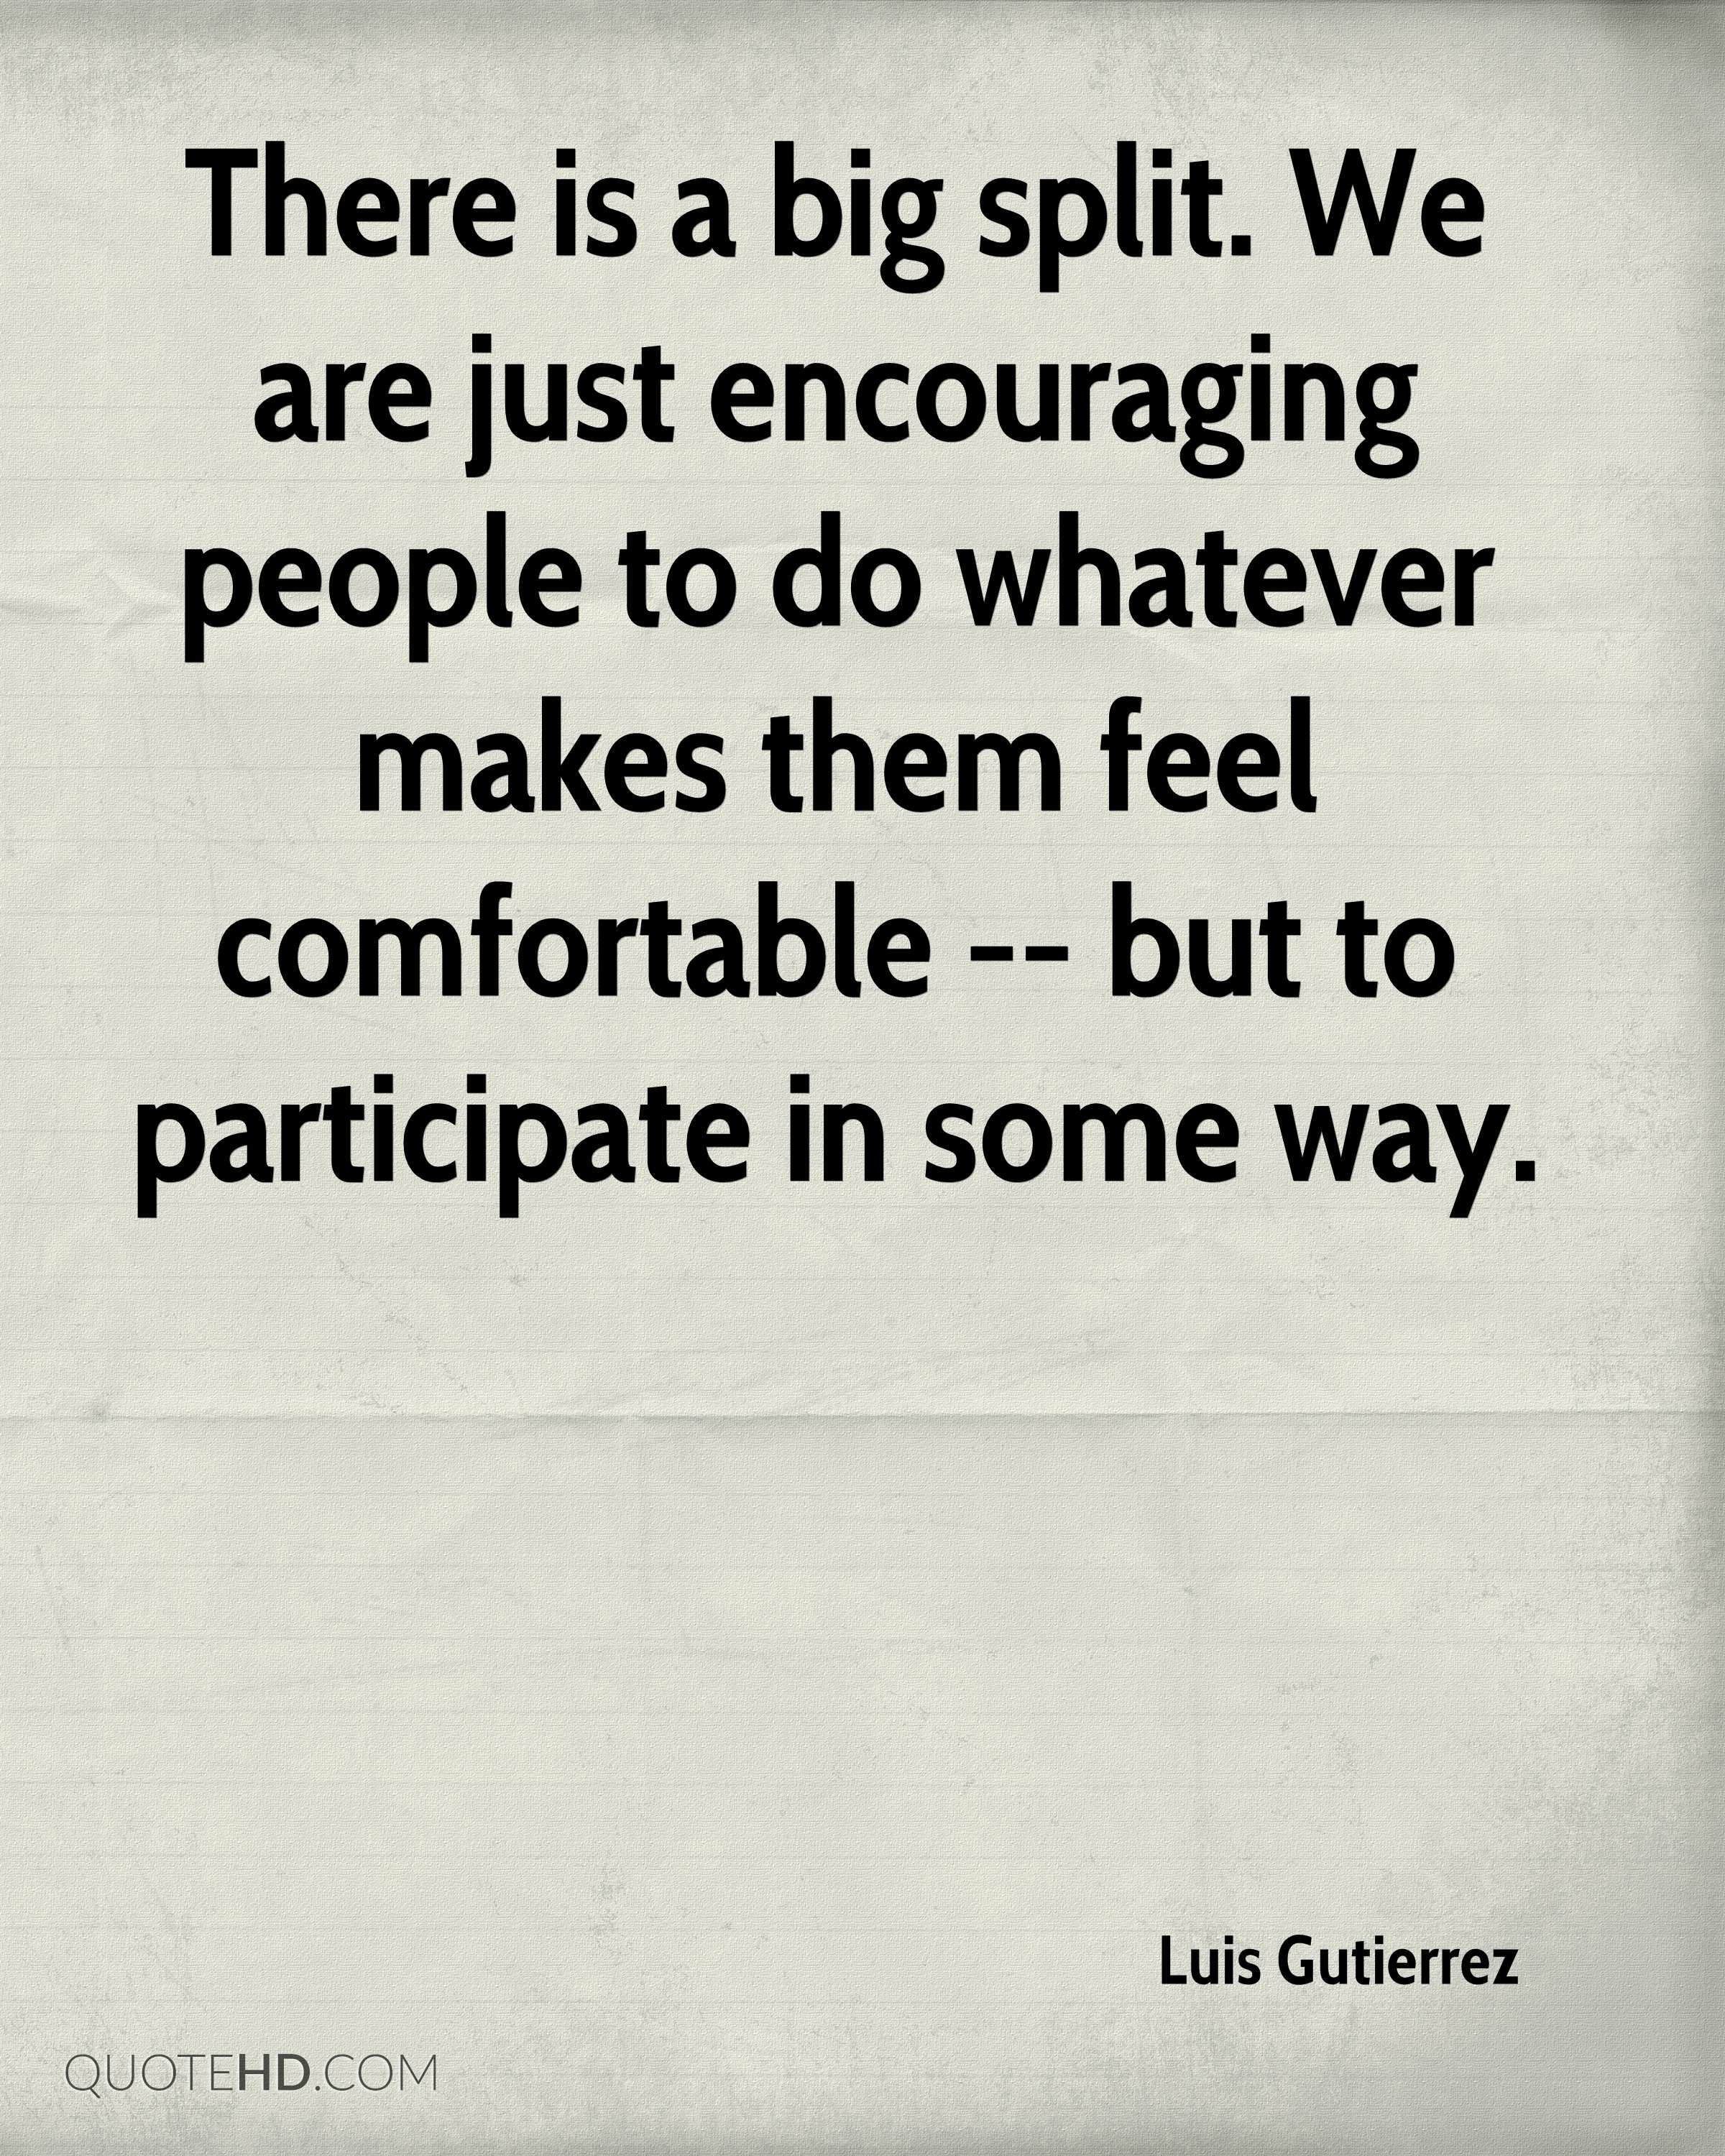 There is a big split. We are just encouraging people to do whatever makes them feel comfortable -- but to participate in some way.